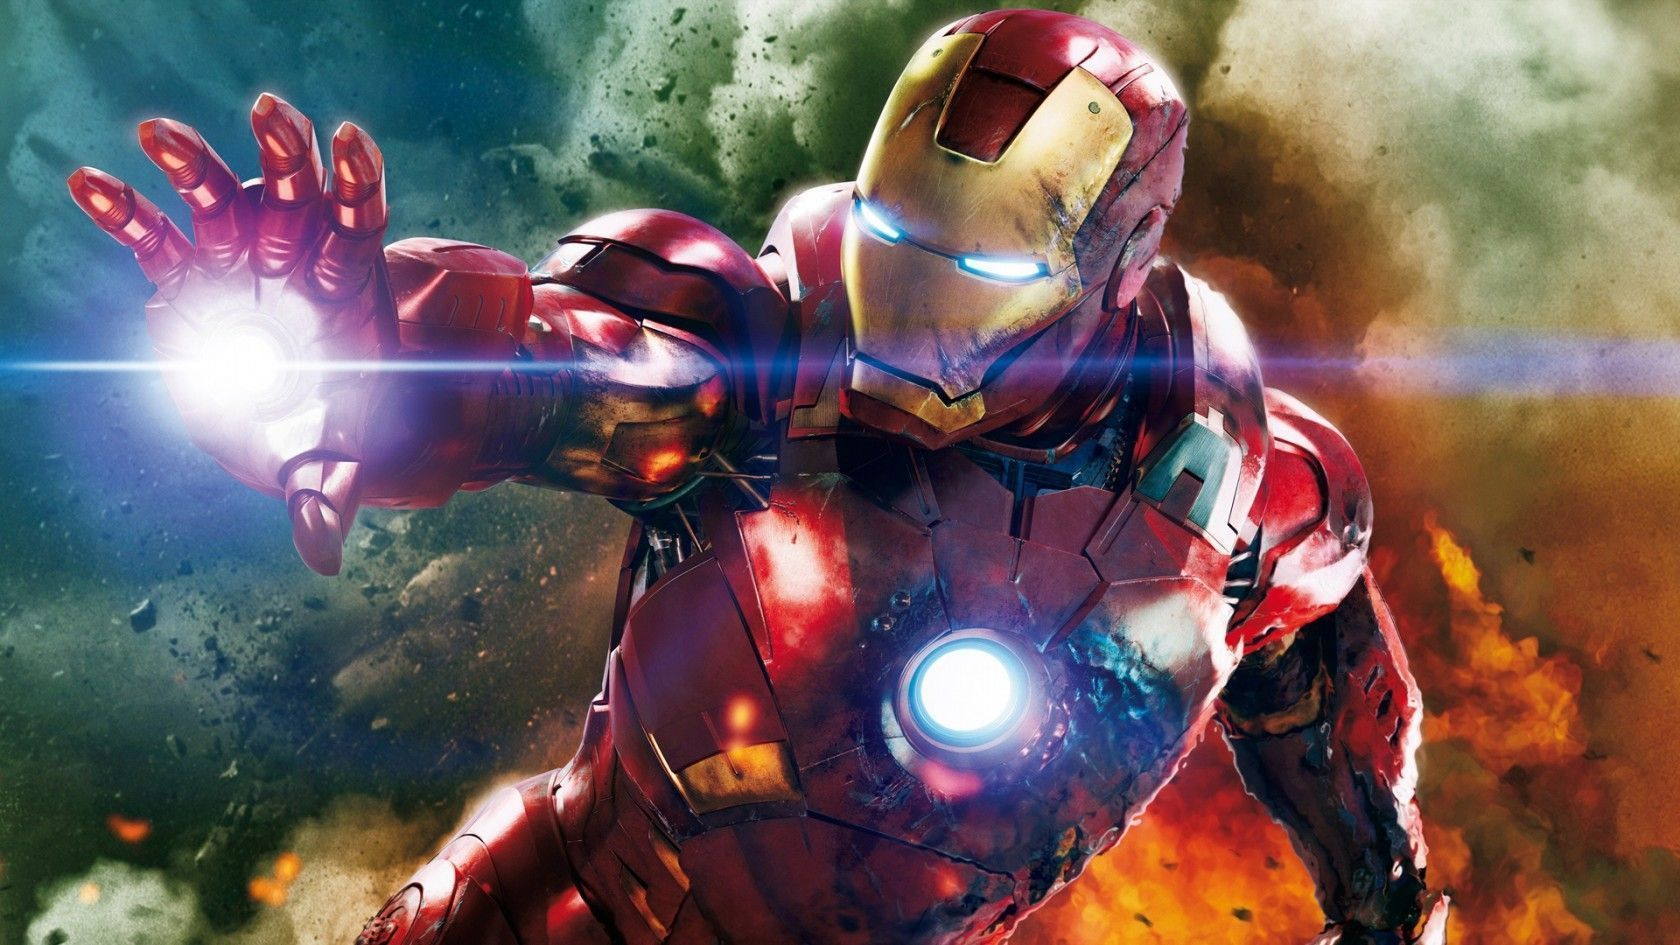 Iron Man Wallpapers For Free Download In HD